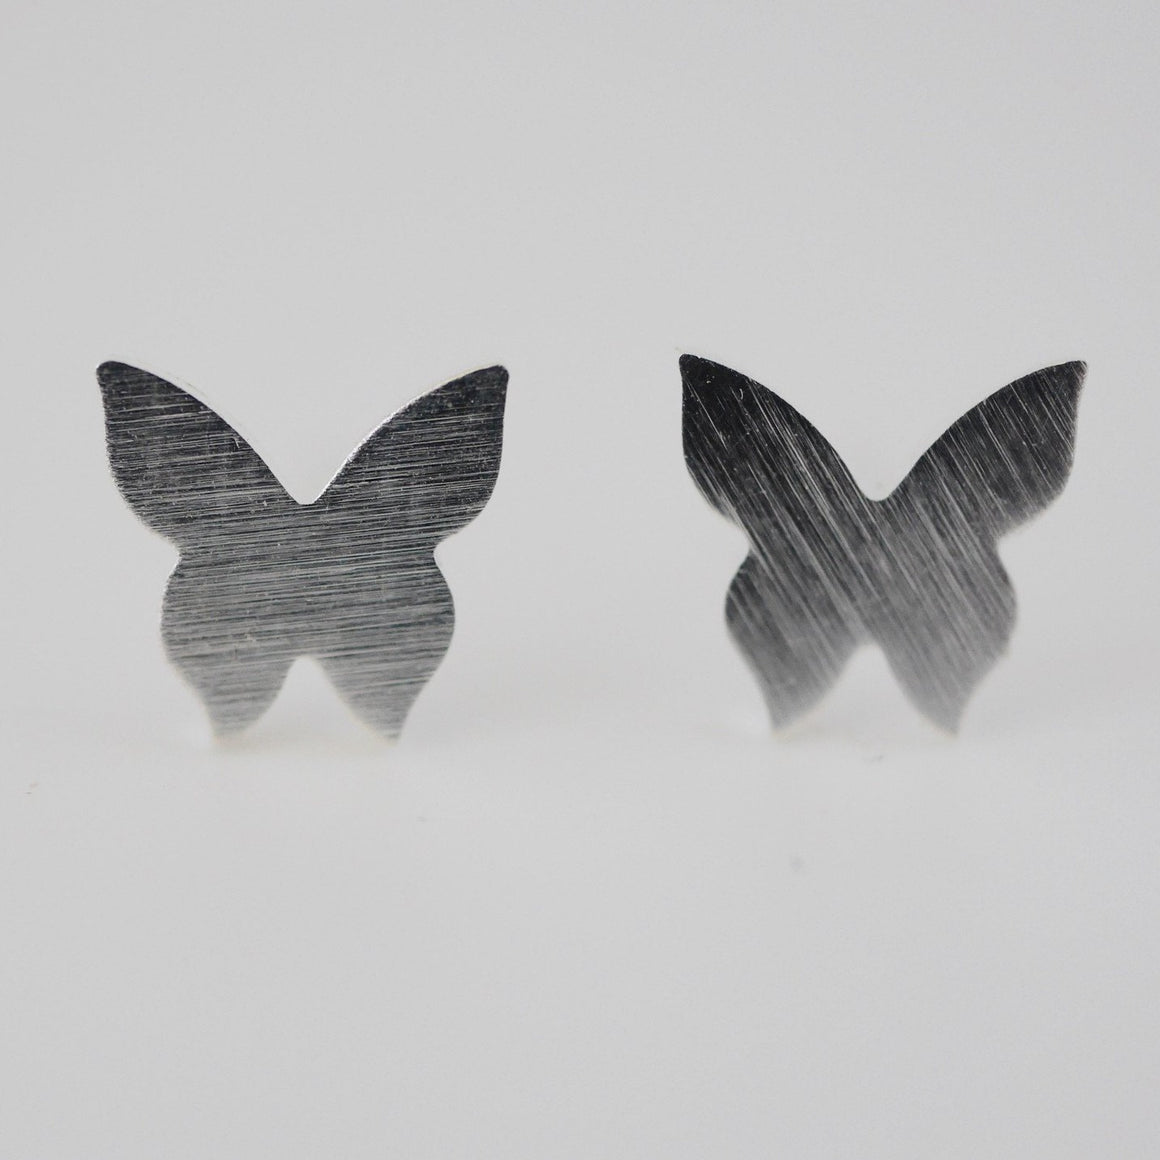 Stainless Steel Earrings - Butterfly